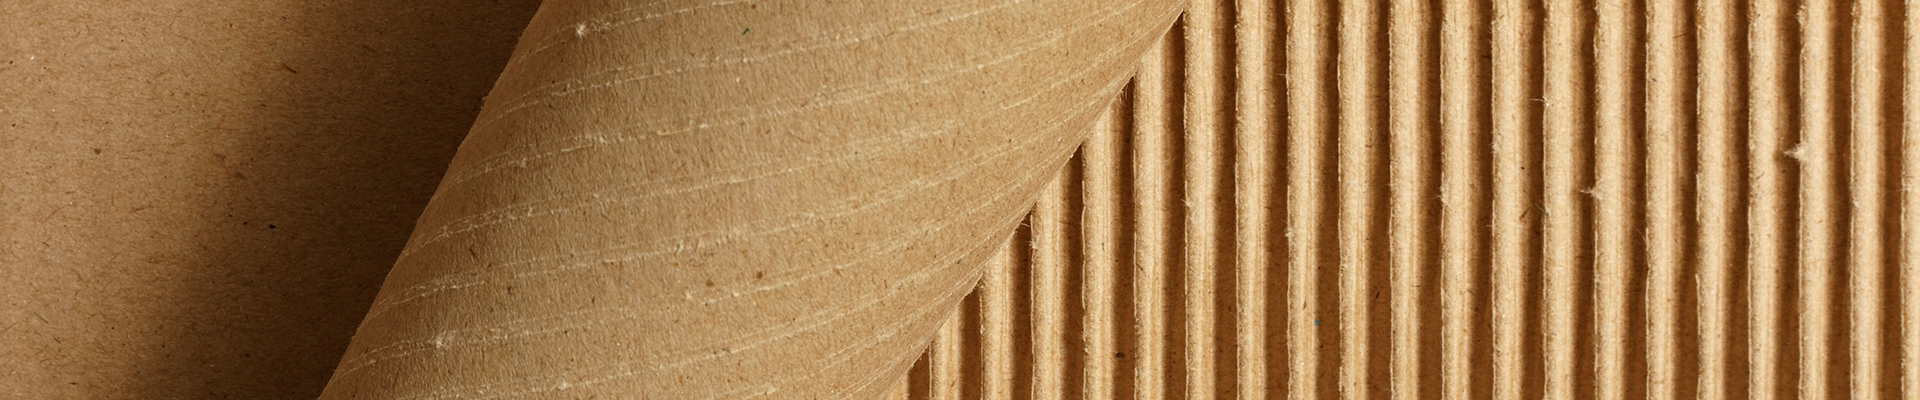 The  most  suitable  design  of  corrugated  board  packaging